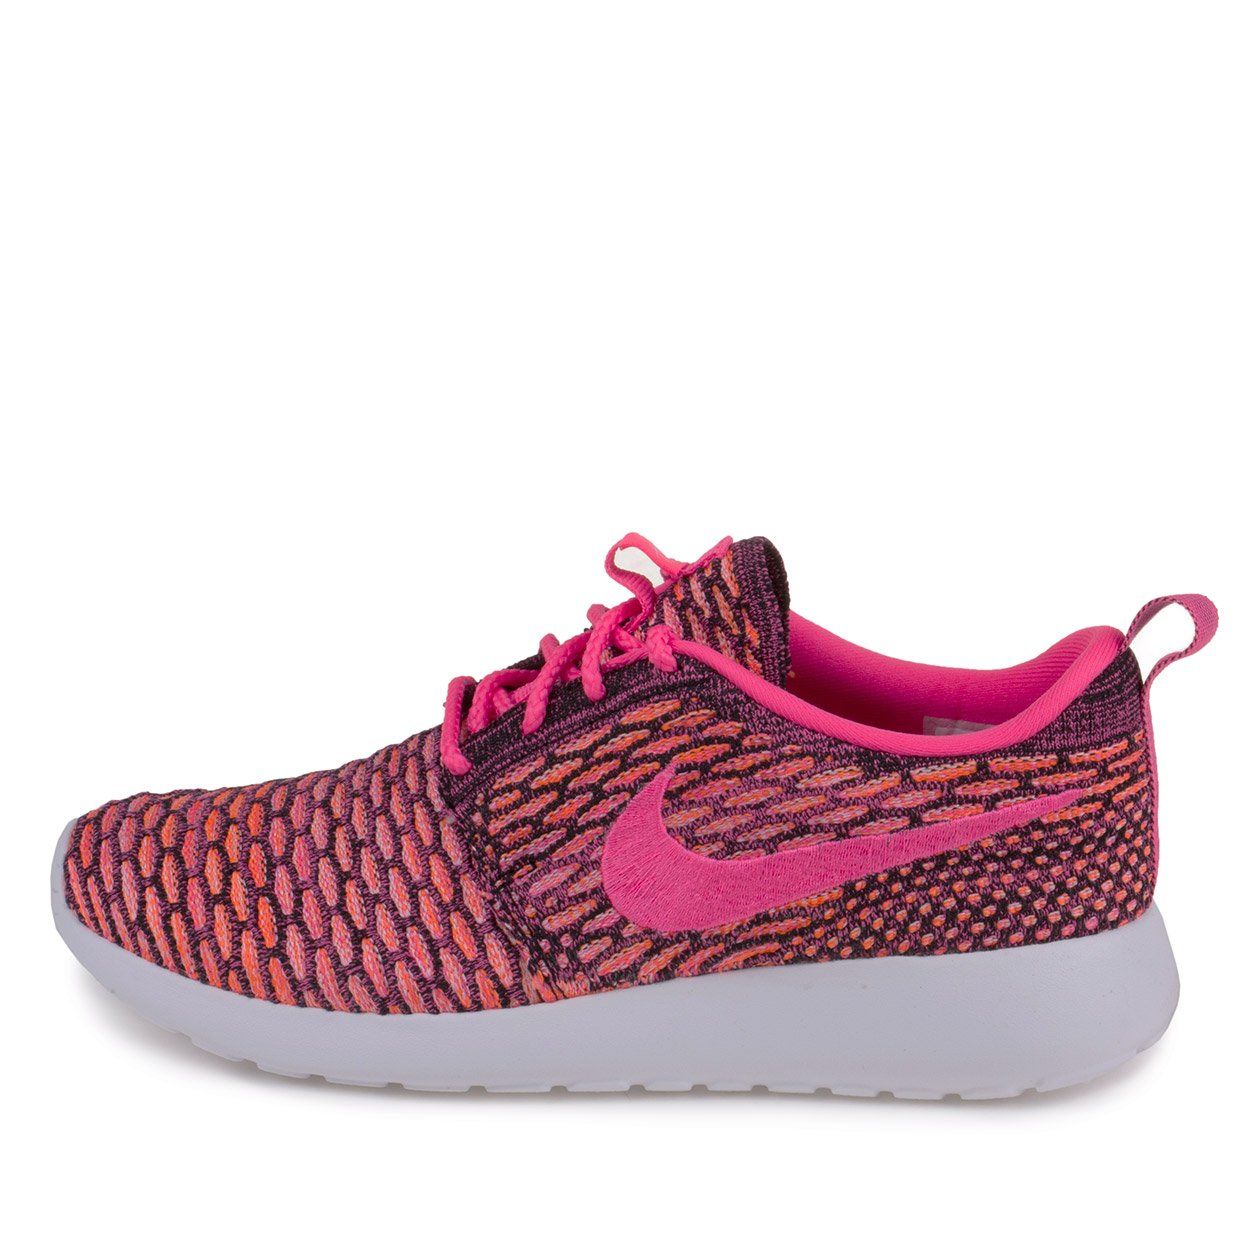 reputable site 94d43 9a9f4 Galleon - Nike Womens WMNS Rosherun Flyknit Black Pink Pow-White-Total  Orange Synthetic Size 8 Running, Cross Trainers